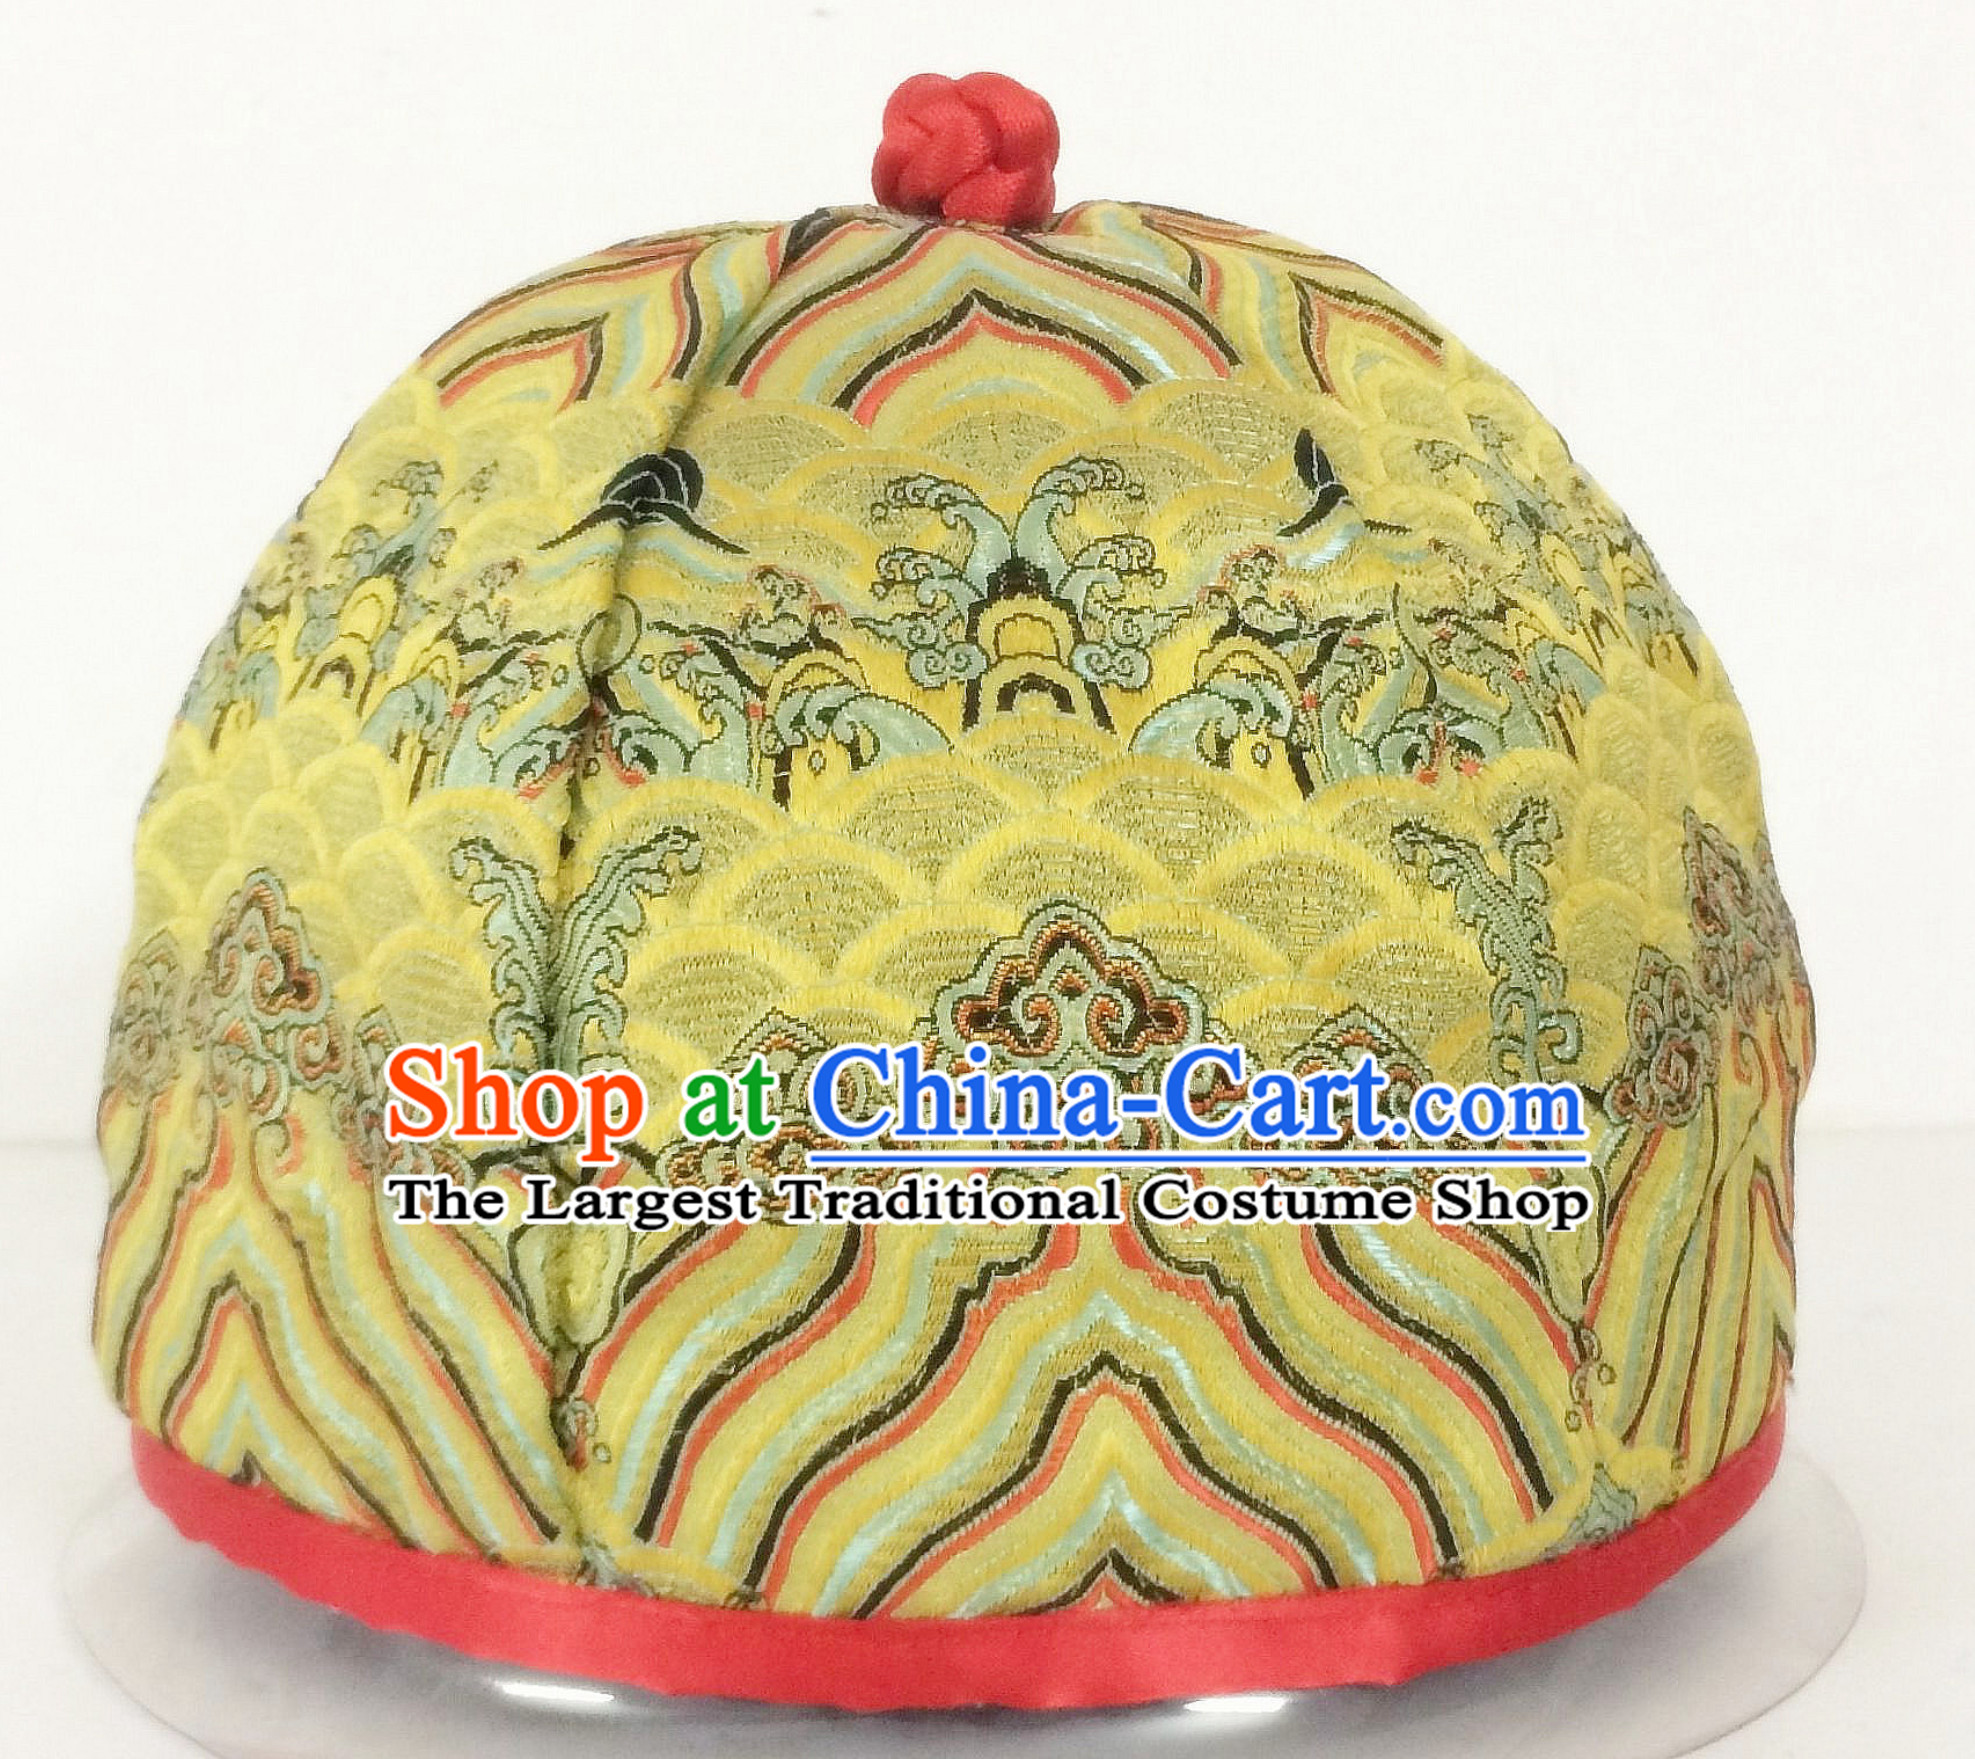 Chinese Ancient Style Handmade Qing Dynasty Golden Imperial Hat Manchu Hat for Men